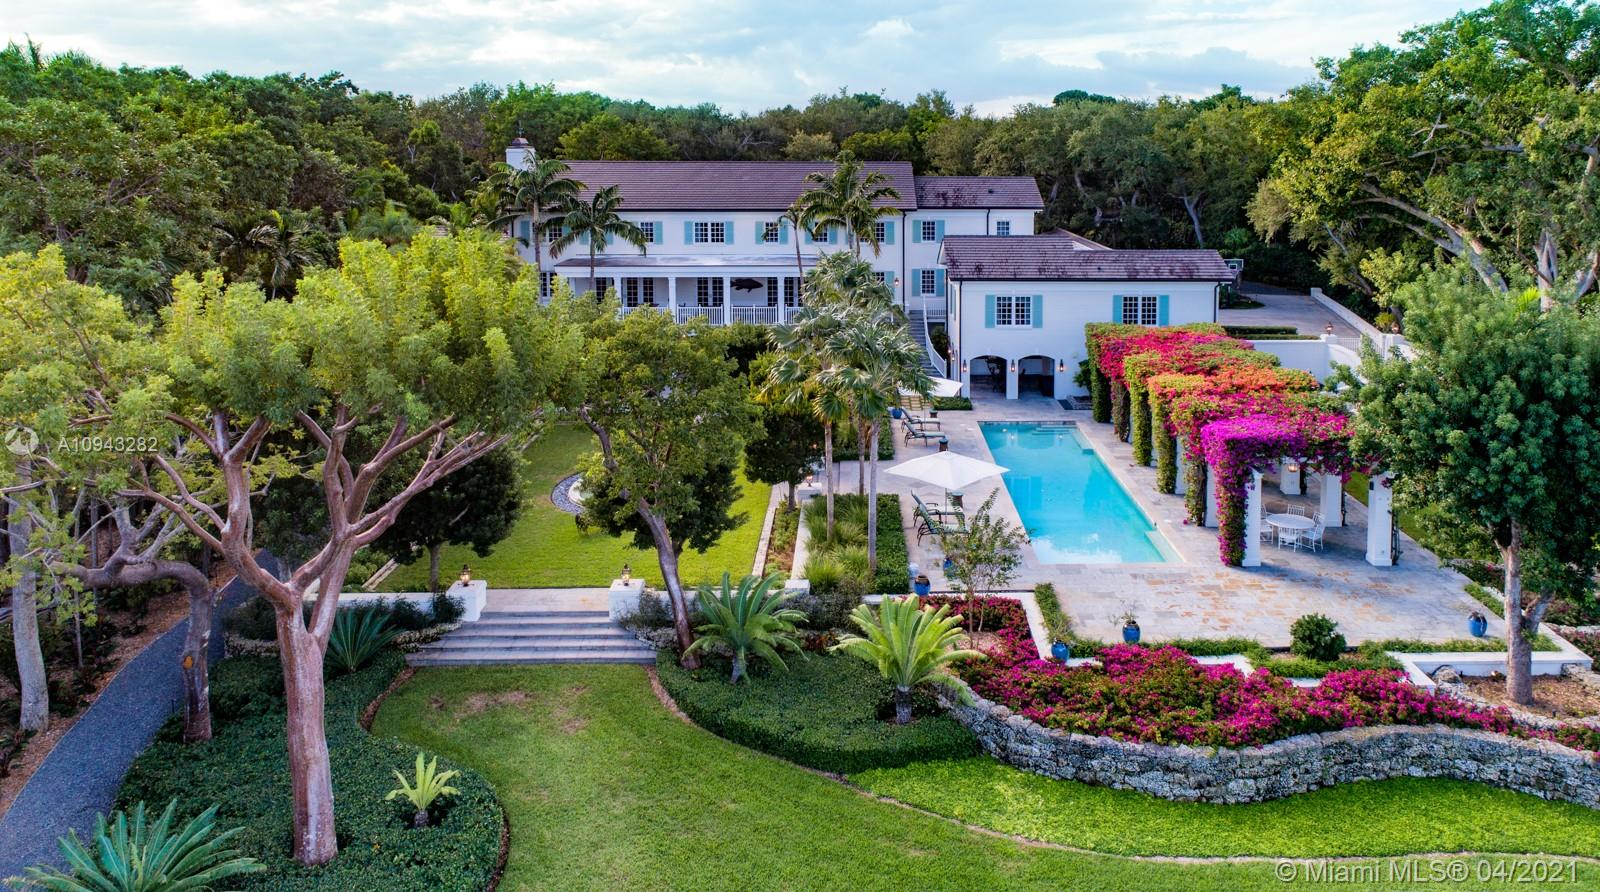 An impressive 205 ft of waterfront takes center stage at this exceptionally detailed, seven-bedroom, eight-and-a-half bath estate. Situated on over four acres in the beautiful waterfront community of Gables Estates, the home meets the highest expectations of luxury living and displays exquisite finishes. Elegant interiors are introduced via the great foyer with gorgeous staircase, which leads to spacious living areas, a gourmet kitchen, breakfast area, and formal dining room. The upstairs primary suite features a beautifully designed bath with marble floors. Perfect for outdoor living and entertaining, the property includes a summer kitchen, large wine cellar, gym, game room, and home theater. It has an incredible pool, spa, tennis court, and a dock providing direct access to Biscayne Bay.